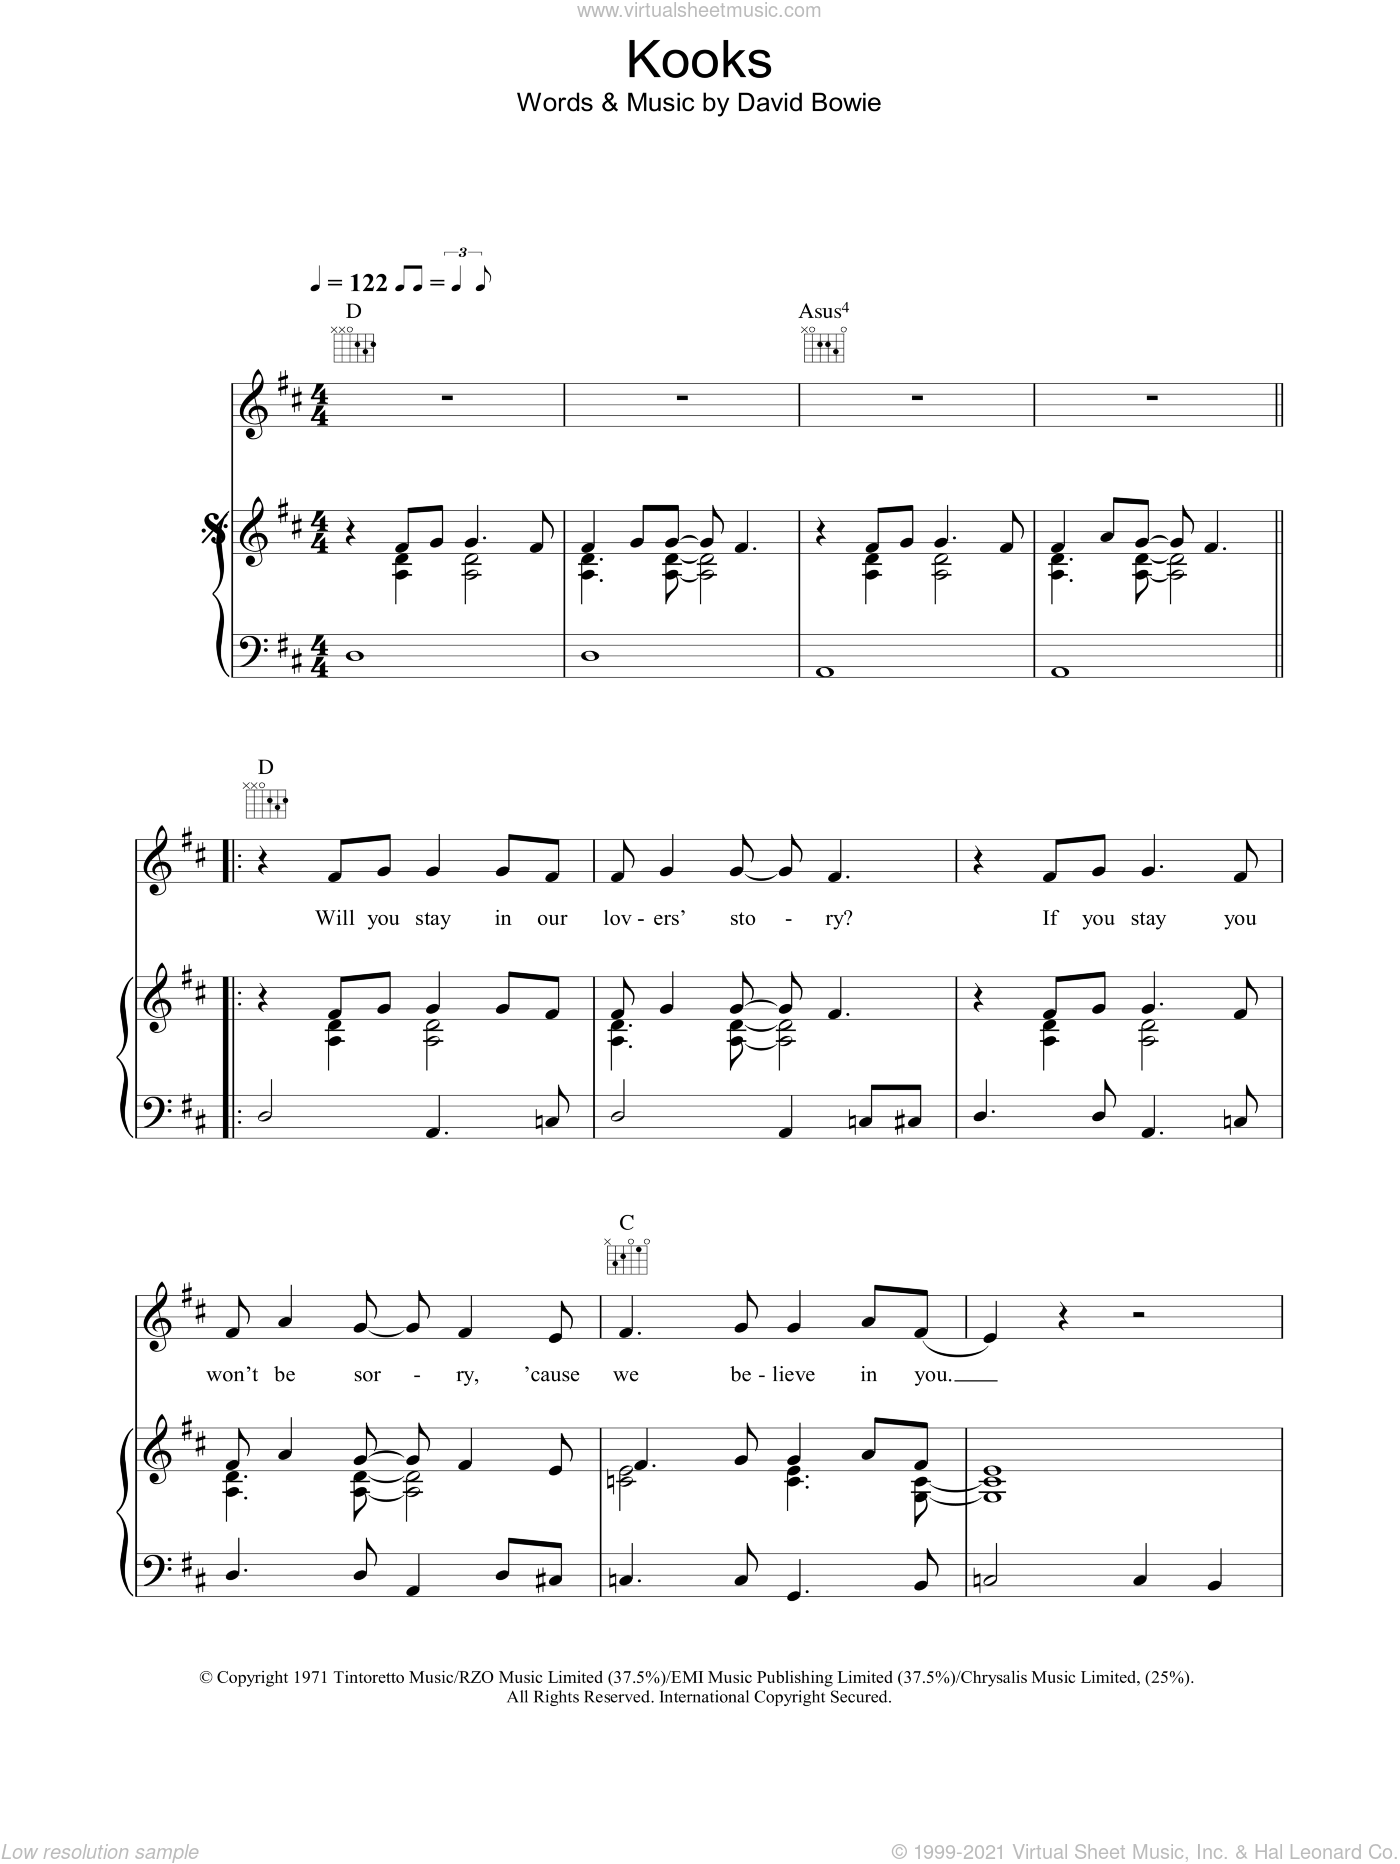 Kooks sheet music for voice, piano or guitar by David Bowie